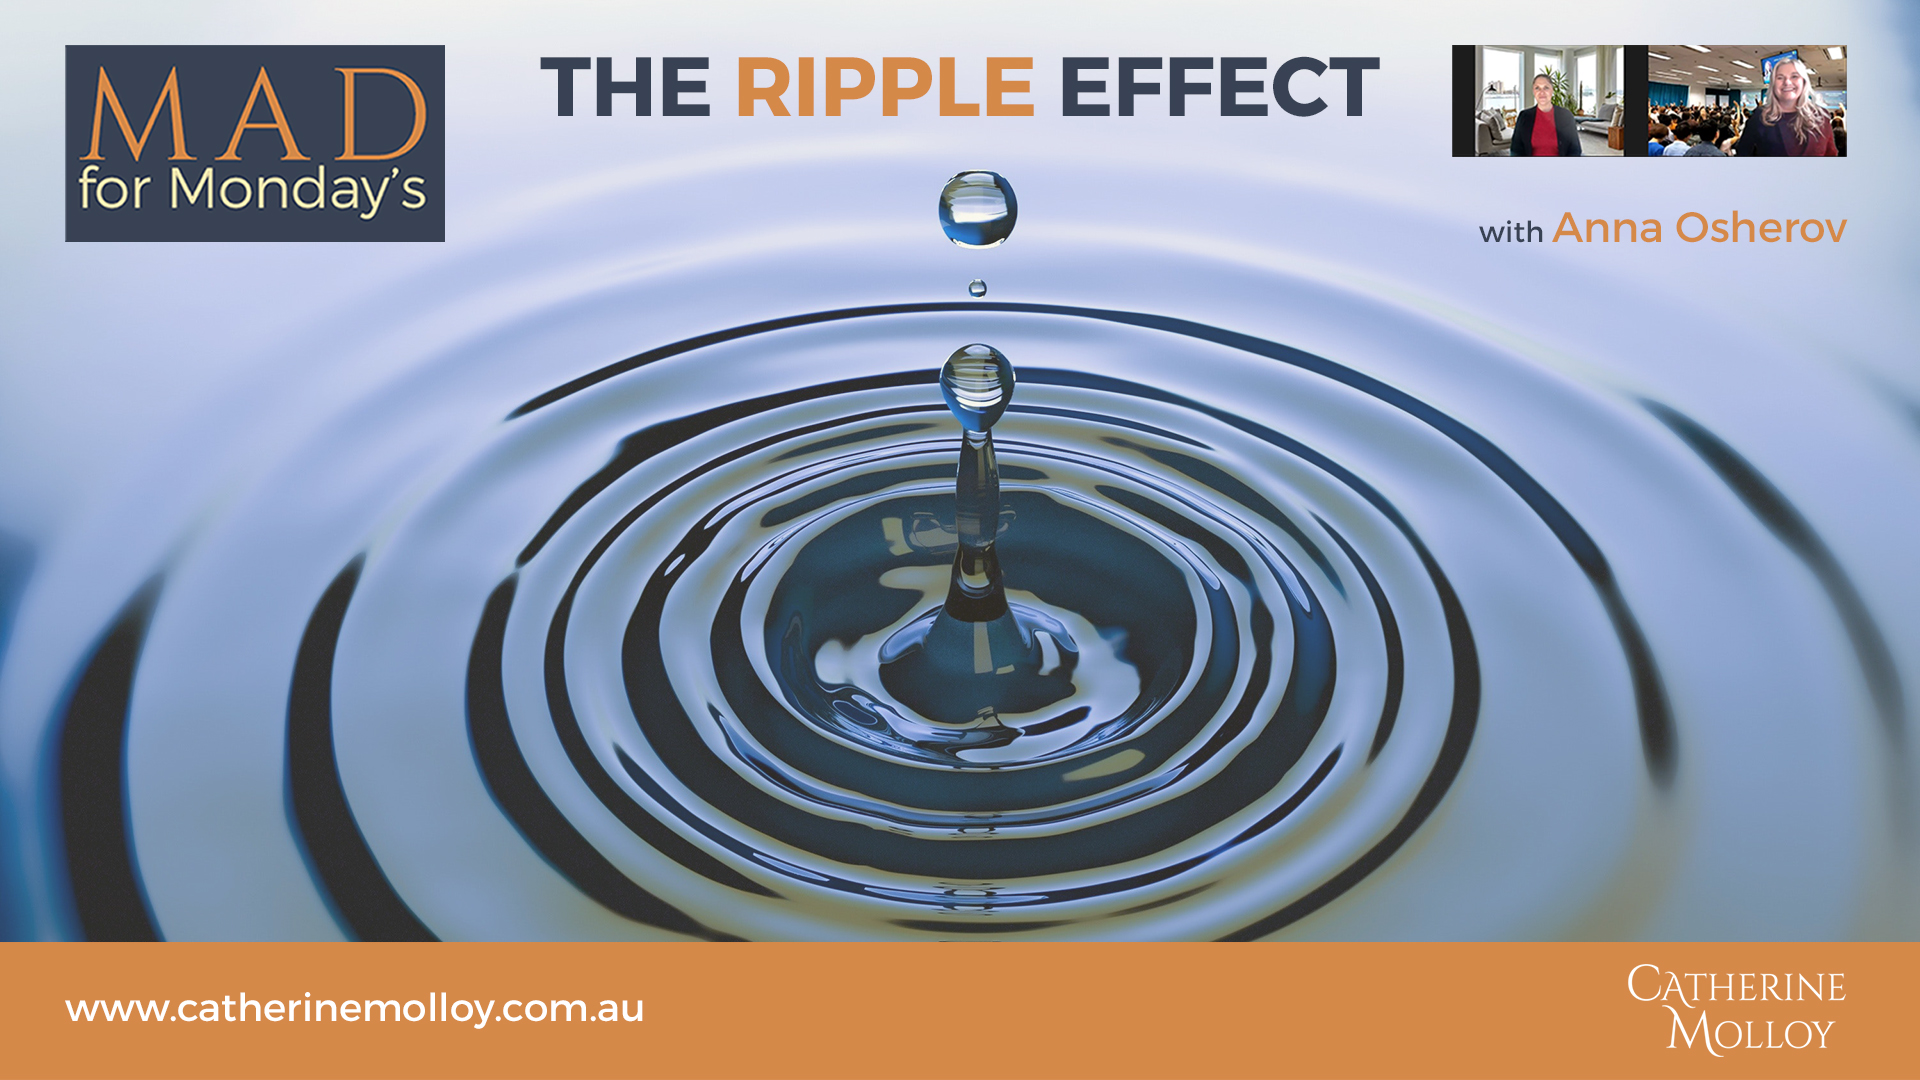 MAD for Monday's – The Ripple Effect